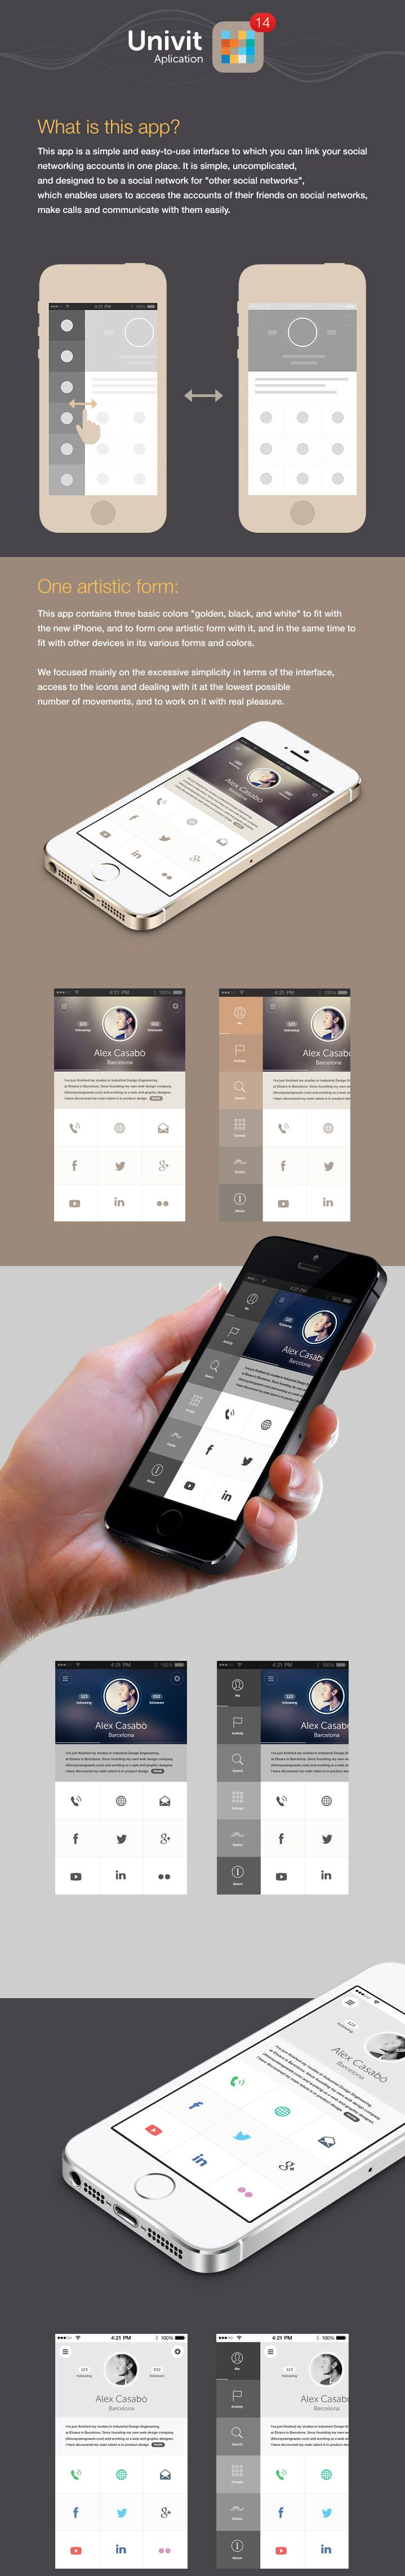 #app #design inspiration / layout & description